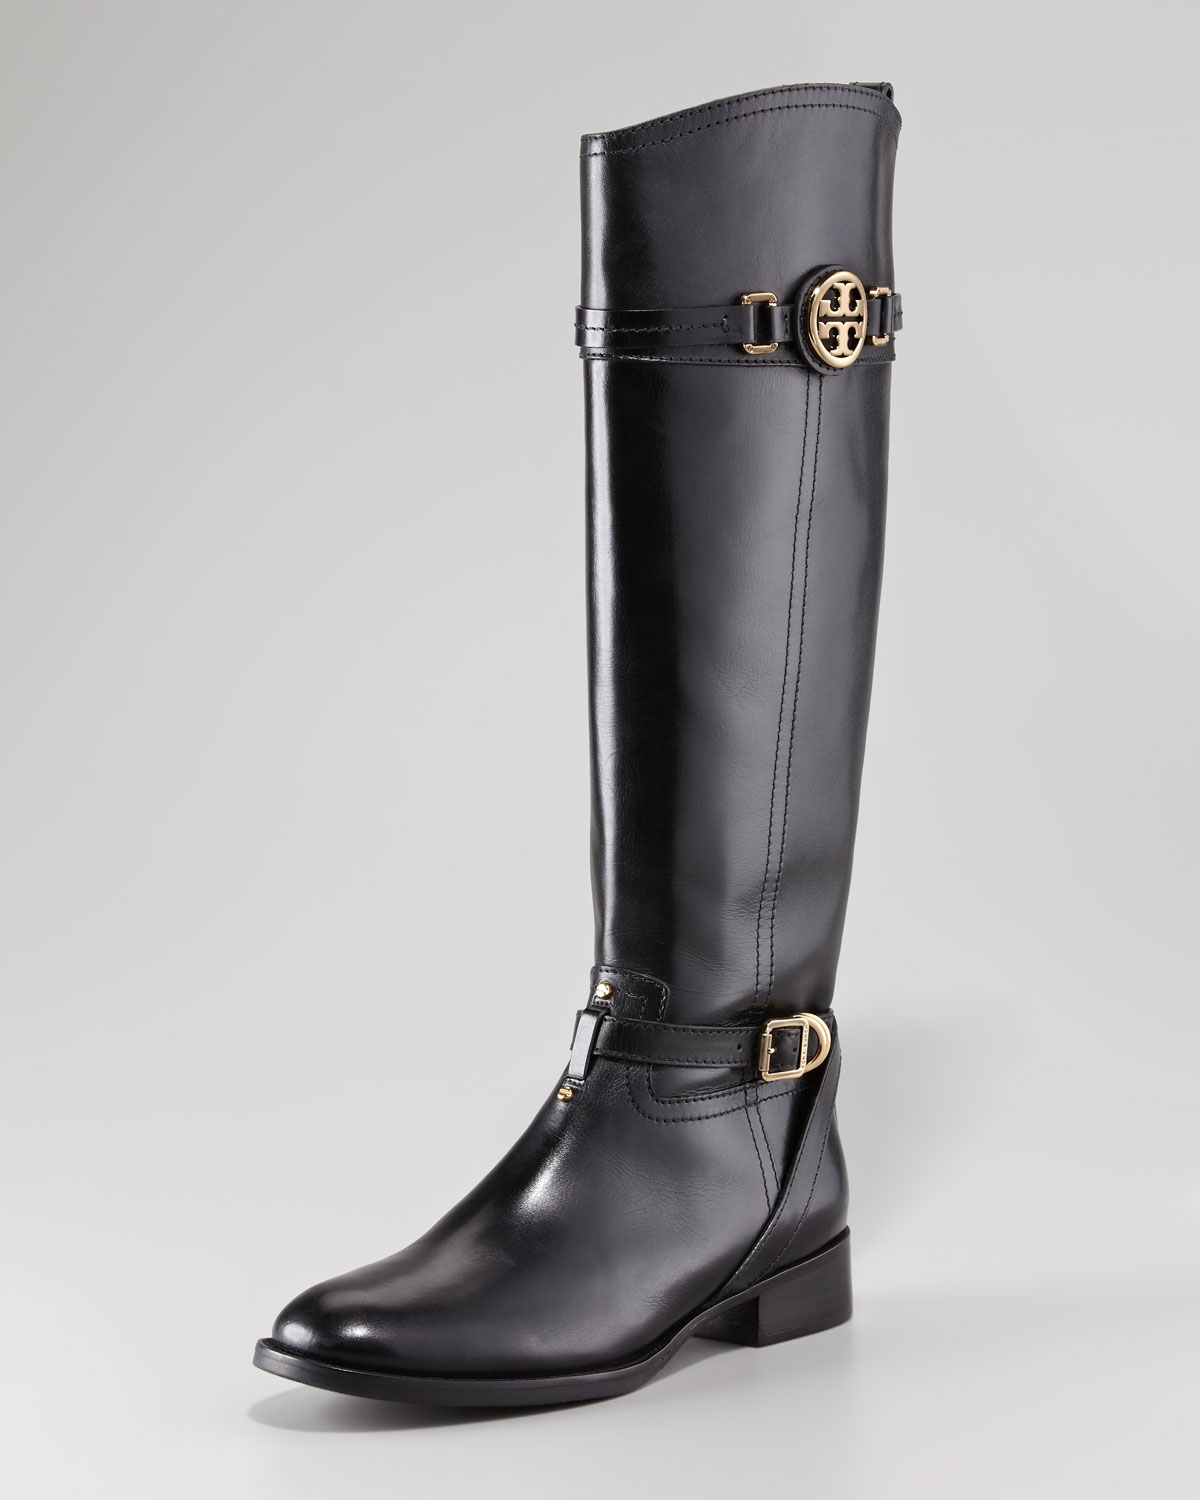 Tory burch Calista Logo Leather Riding Boot Black in Black | Lyst